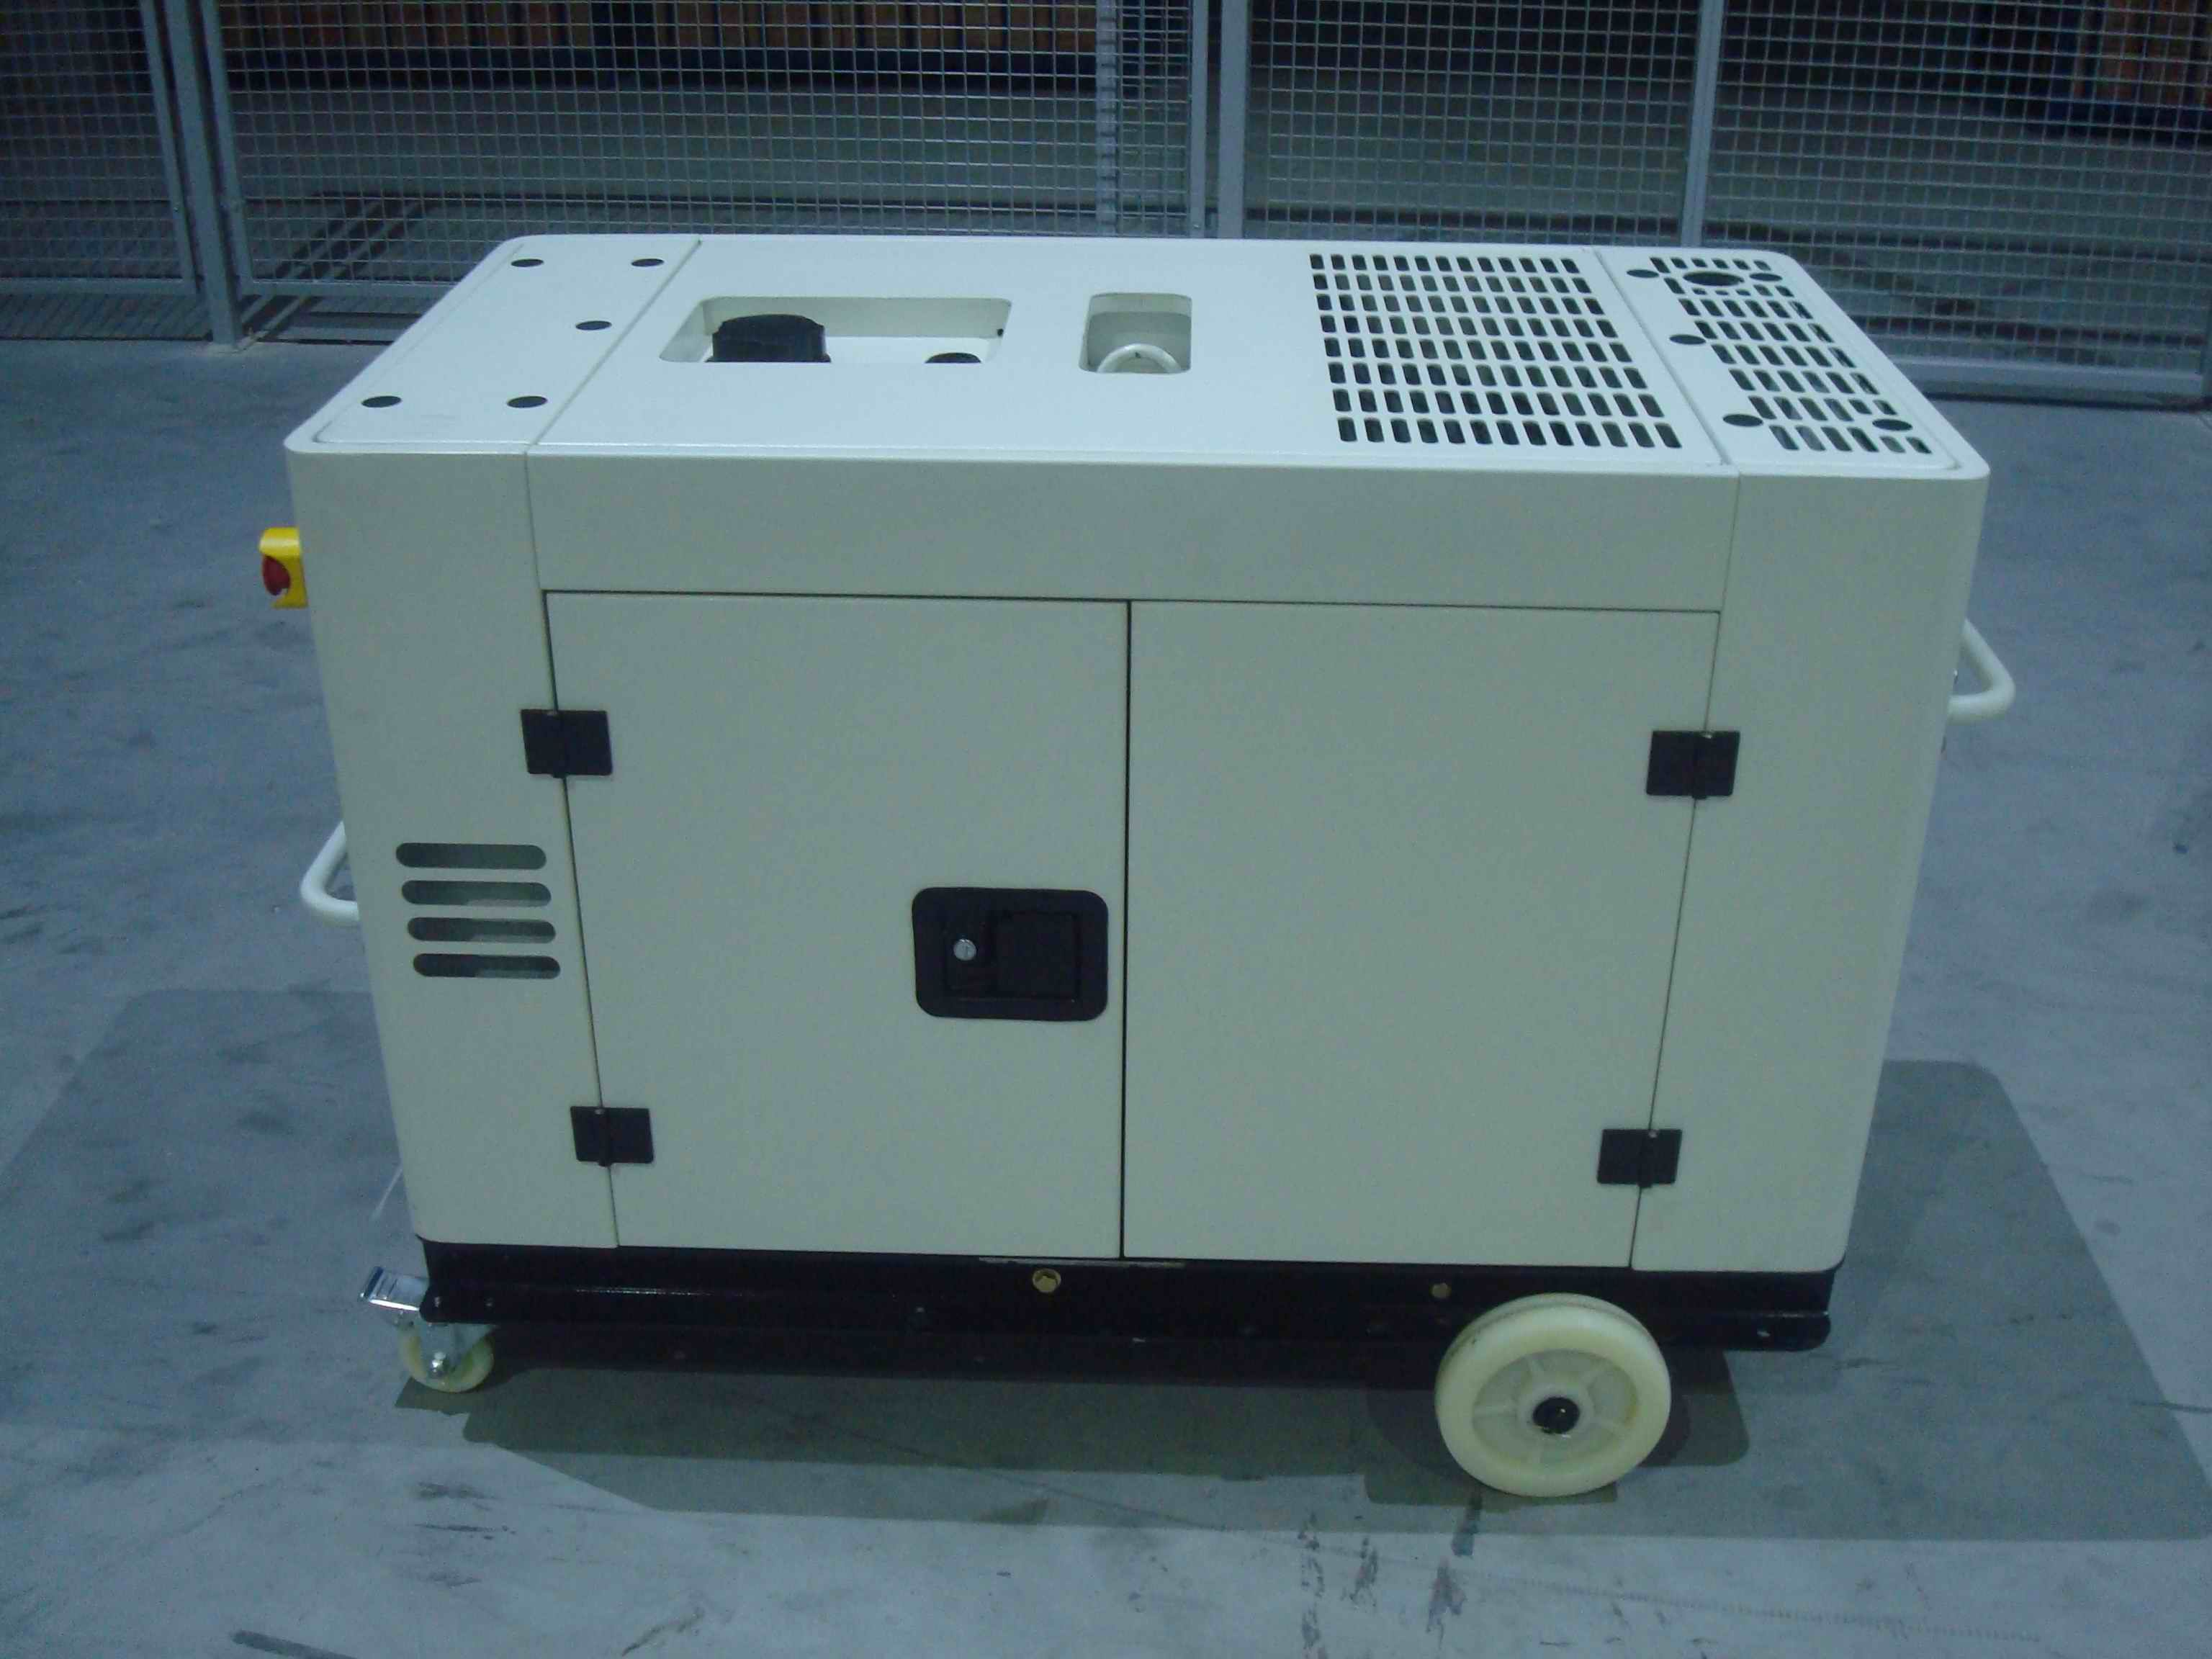 Get Best Quality Electrical Generators From Electrical Generators Ltd We Have The Huge Stock O Generators For Sale Diesel Generators Diesel Generator For Sale